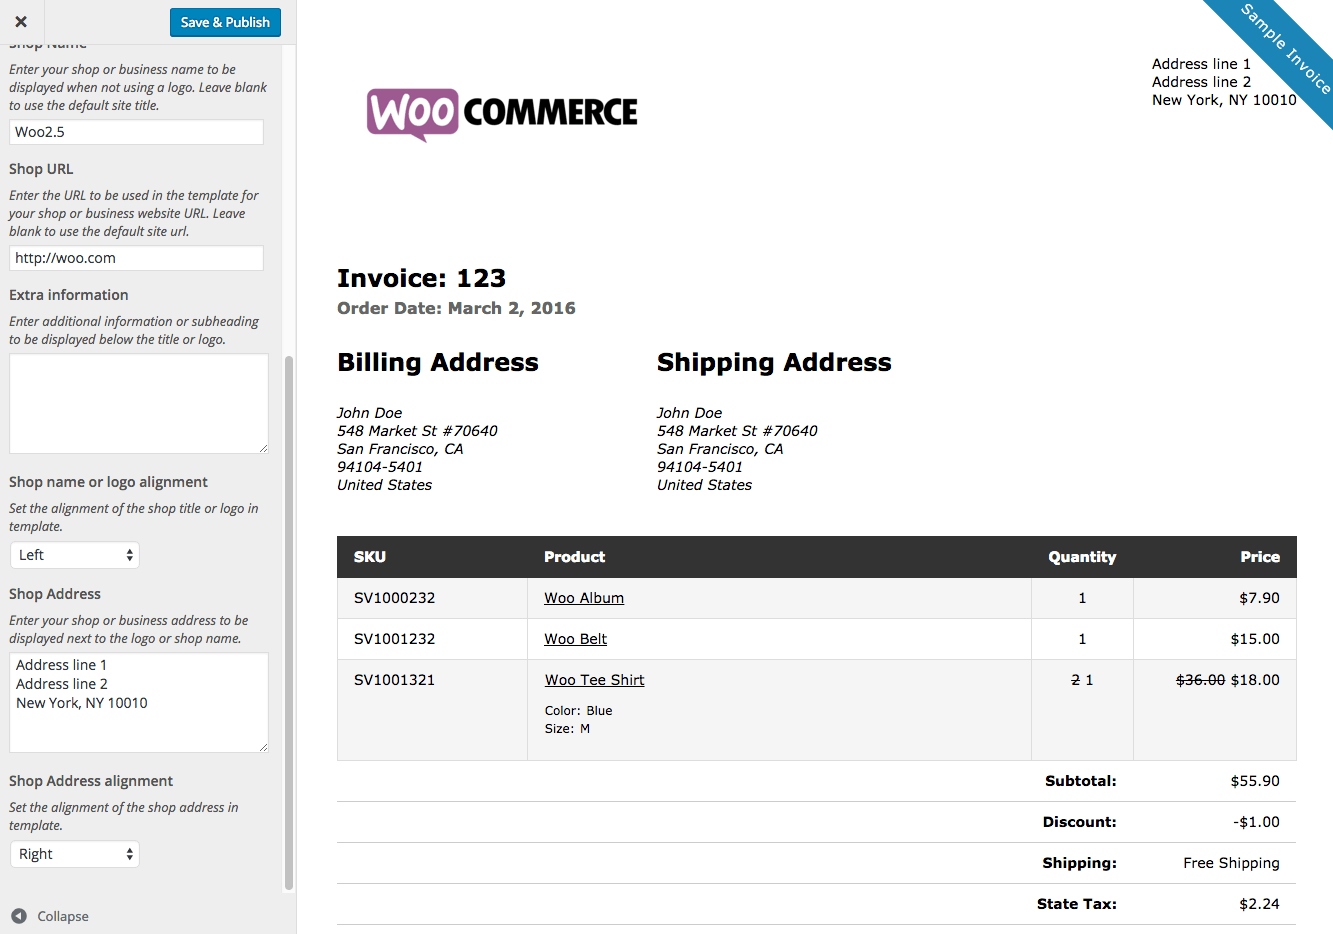 Barneybonesus  Terrific Print Invoices Amp Packing Lists  Woocommerce With Hot Woocommerce Print Invoices  Packing Lists Customizer With Captivating Electricity Bill Payment Receipt Also Nvc Payment Receipt In Addition Tax Receipt Canada And Legal Receipt Of Payment Template As Well As Rent Receipt Word Document Additionally Format For Receipt Of Payment From Woocommercecom With Barneybonesus  Hot Print Invoices Amp Packing Lists  Woocommerce With Captivating Woocommerce Print Invoices  Packing Lists Customizer And Terrific Electricity Bill Payment Receipt Also Nvc Payment Receipt In Addition Tax Receipt Canada From Woocommercecom